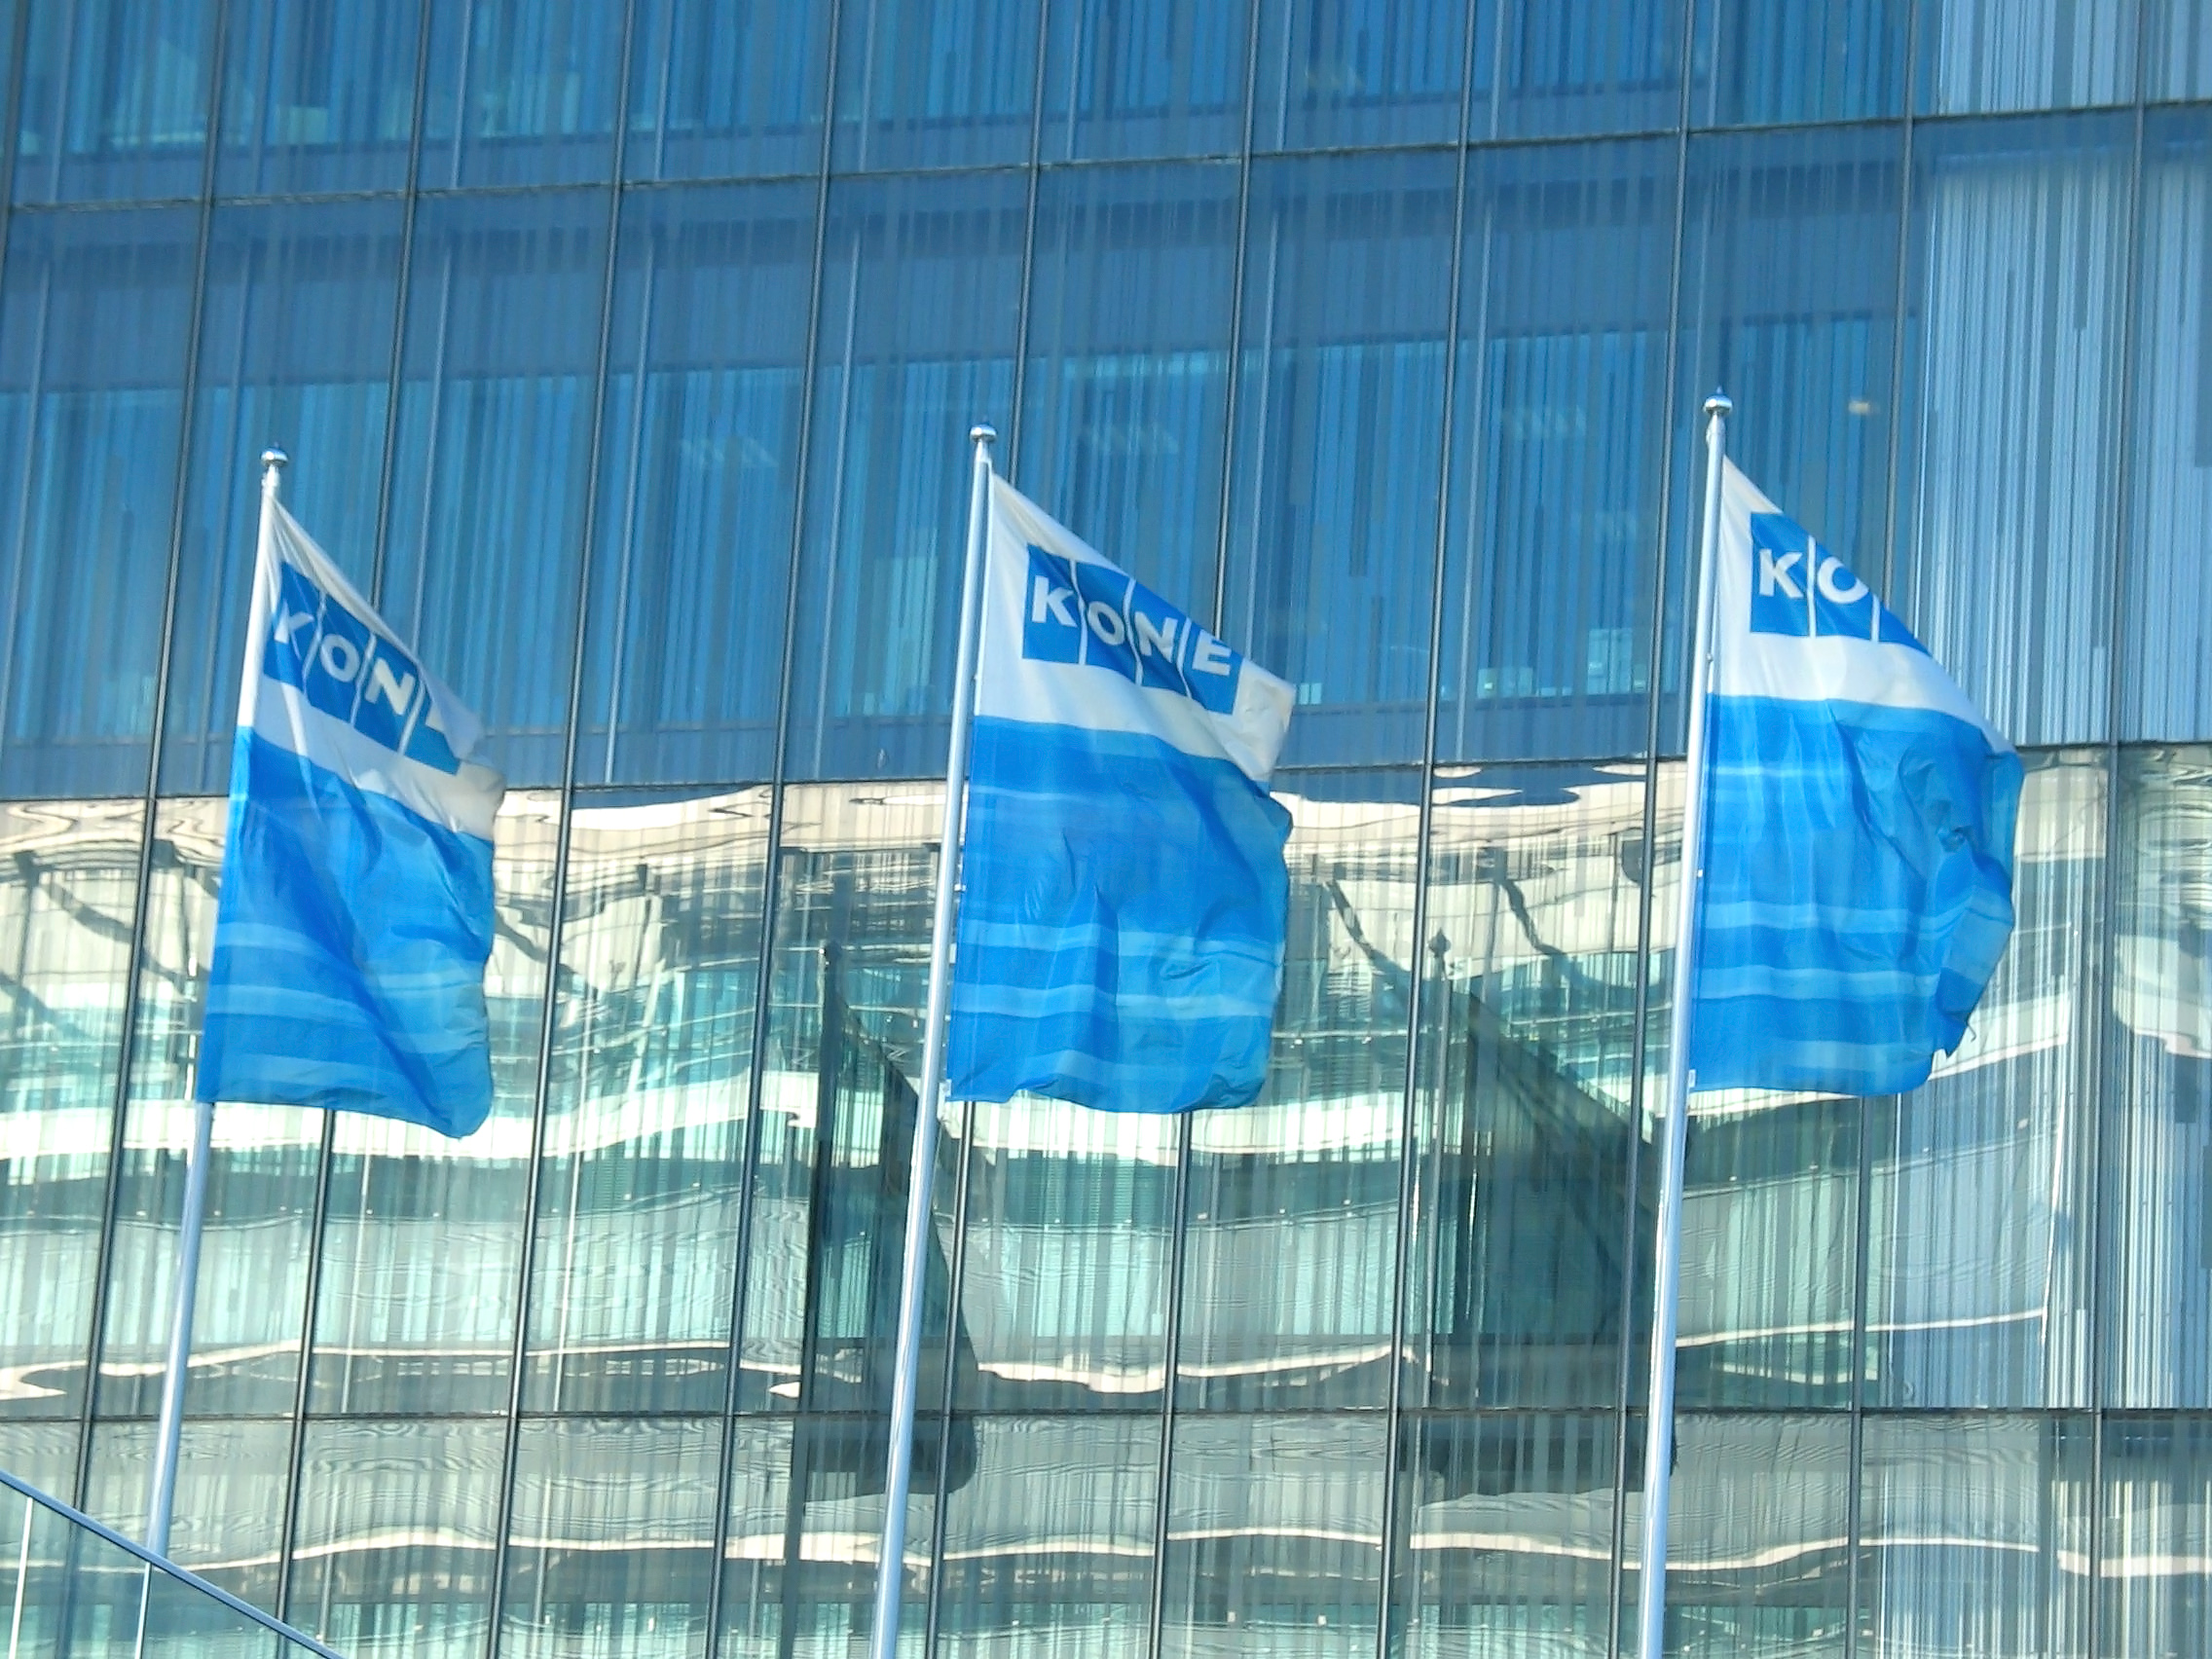 Kone Oyj Should Buy Thyssenkrupp Elevators Even At A High Price